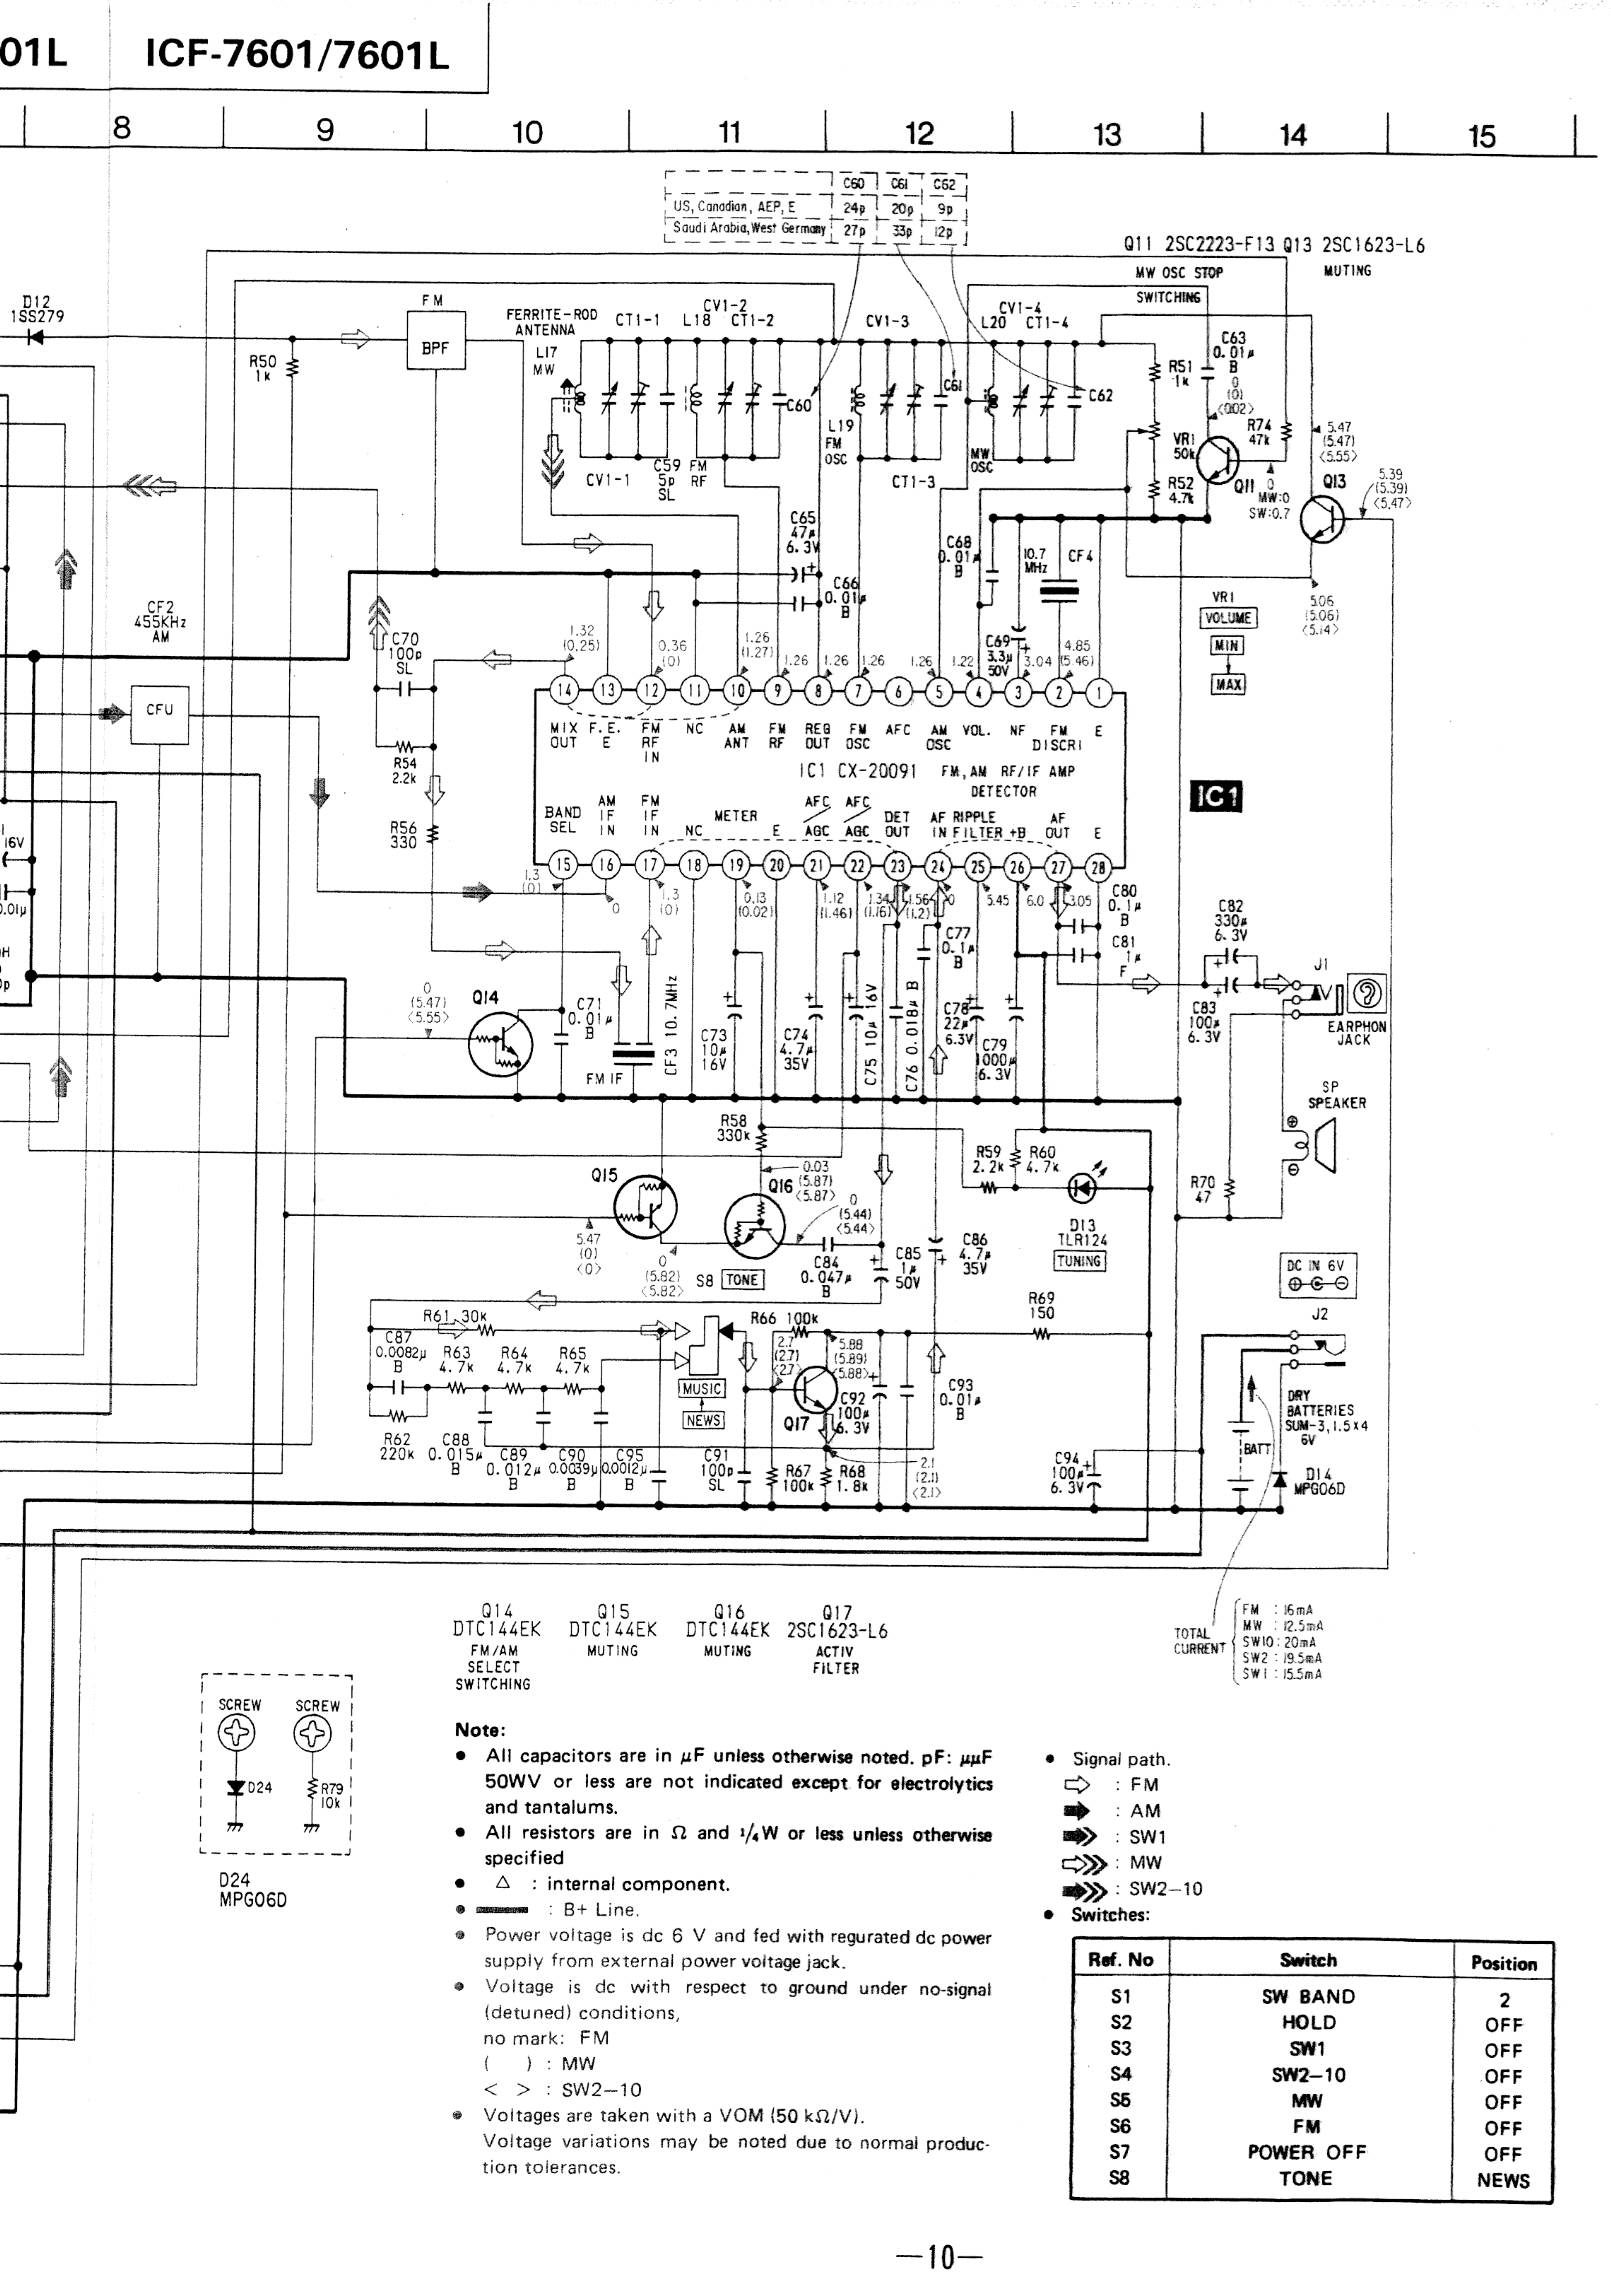 Sony Diagram To Mitsubishi Block And Schematic Diagrams 1998 Mirage Radio Wiring The 7600 Series Page Icf 7601 7600da 7700 Rh Stephan Win31 De Tv